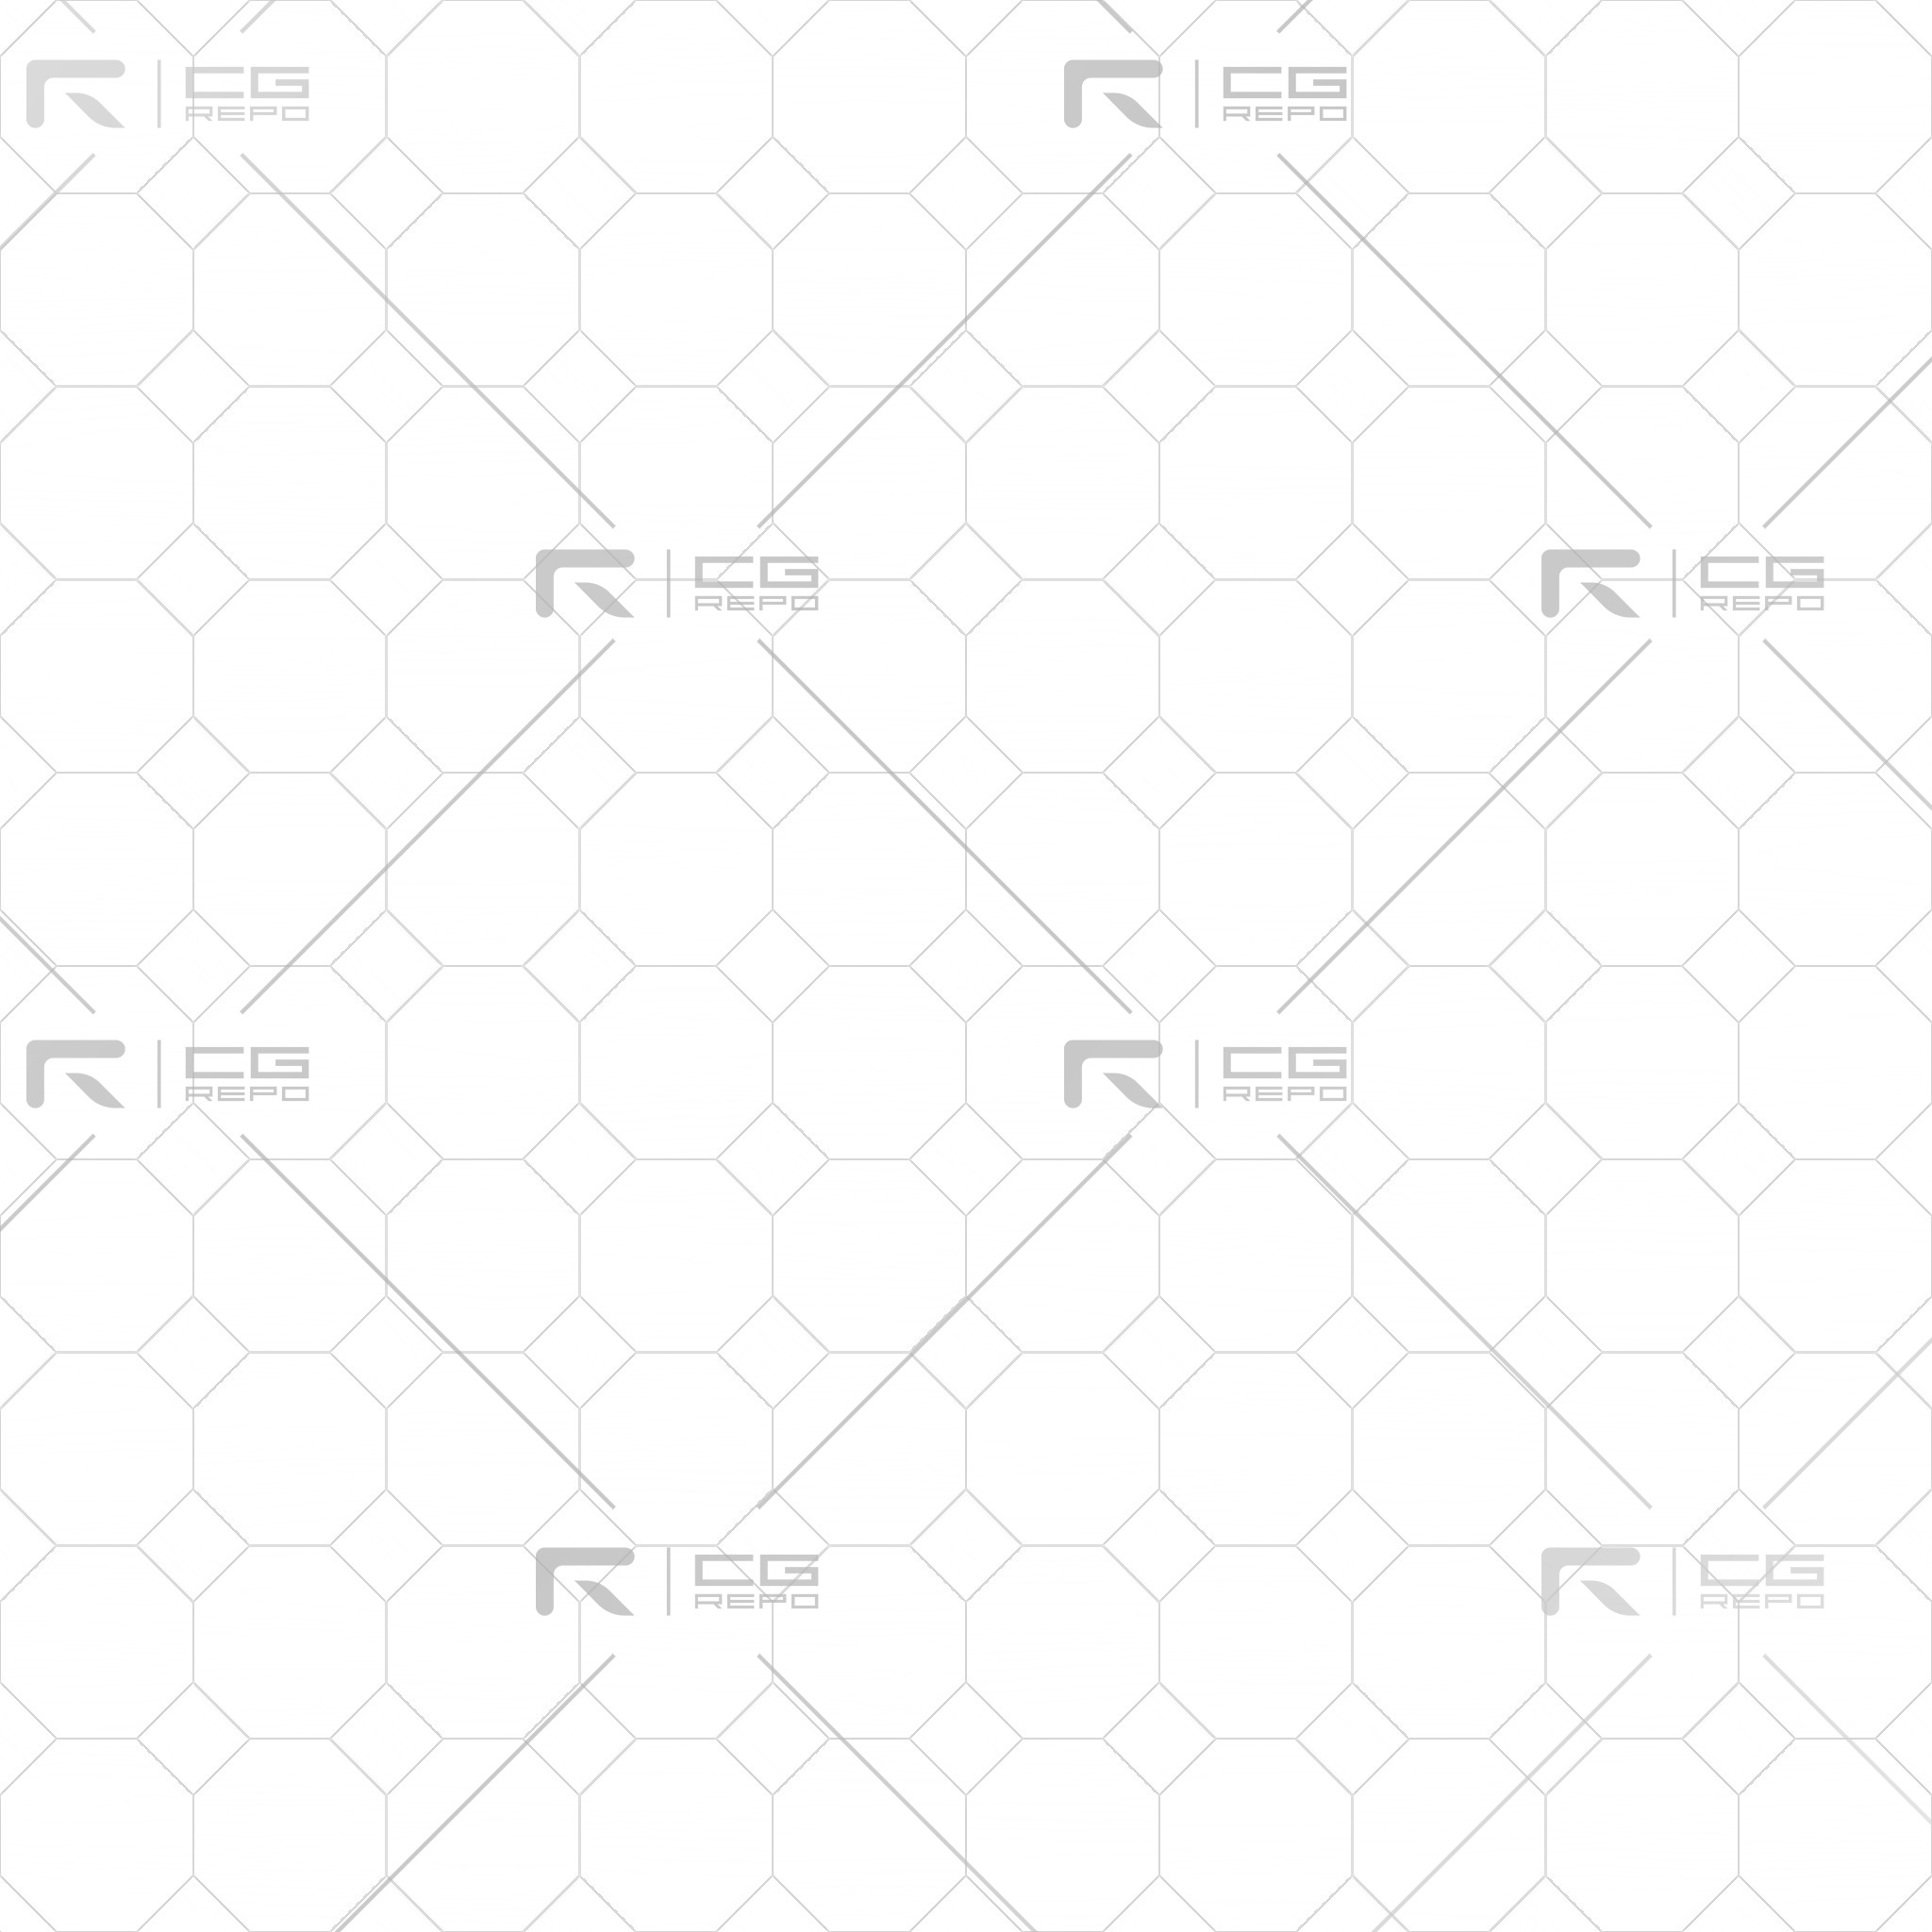 Cherry Golden Octagons Ambient Occlusion Texture